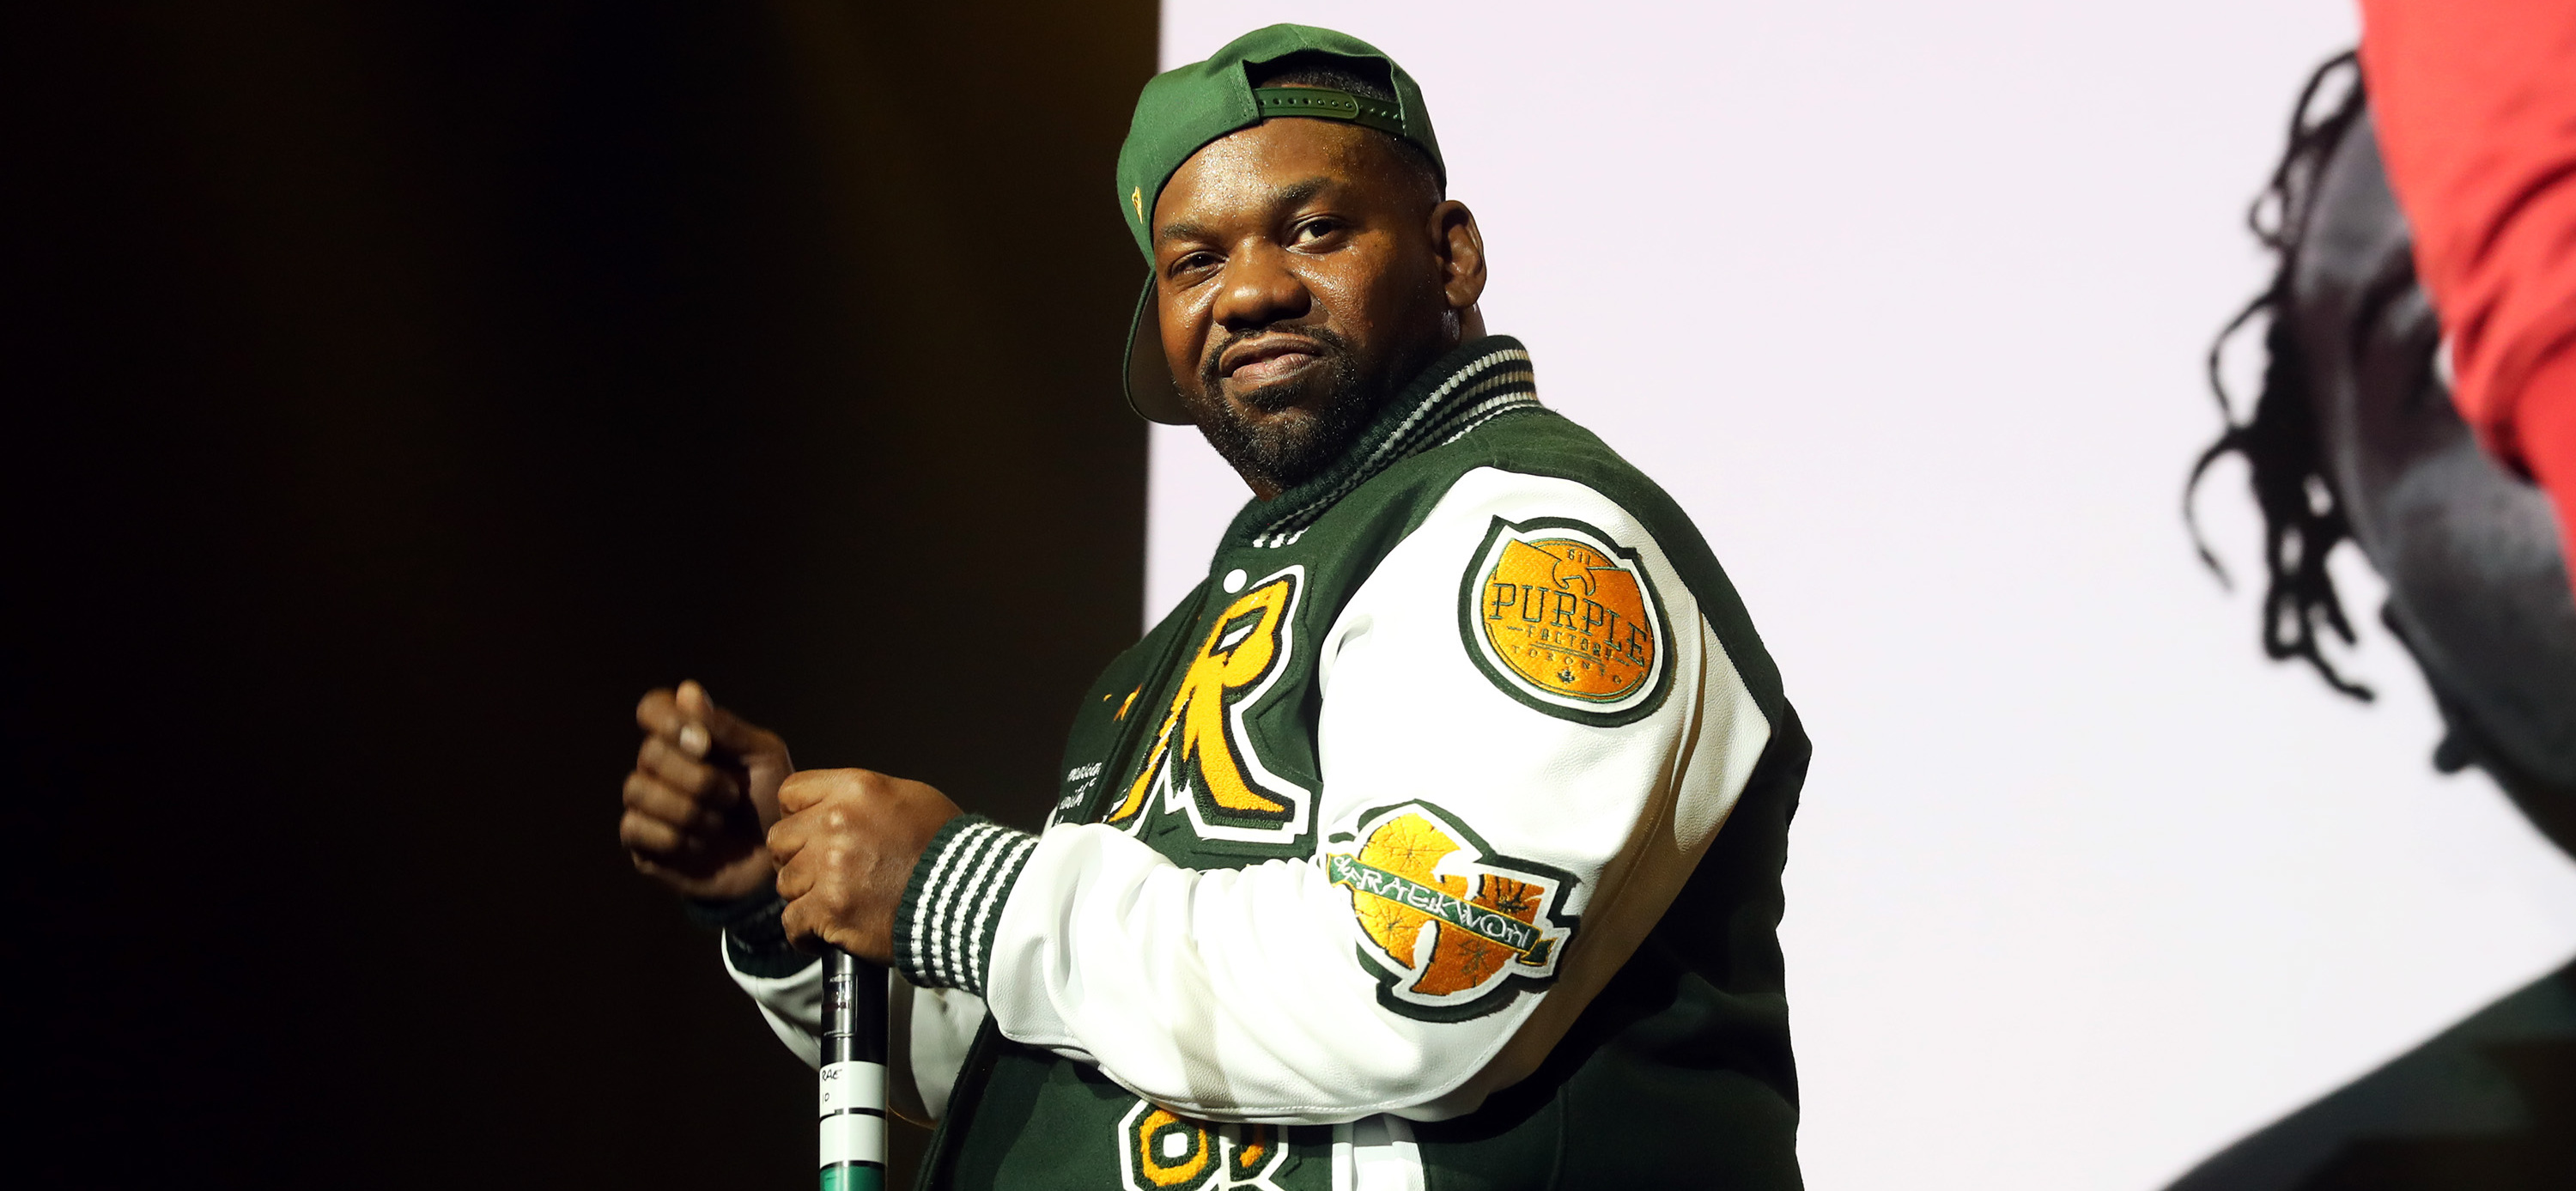 Raekwon of the Wu-Tang Clan Will Publish a Memoir